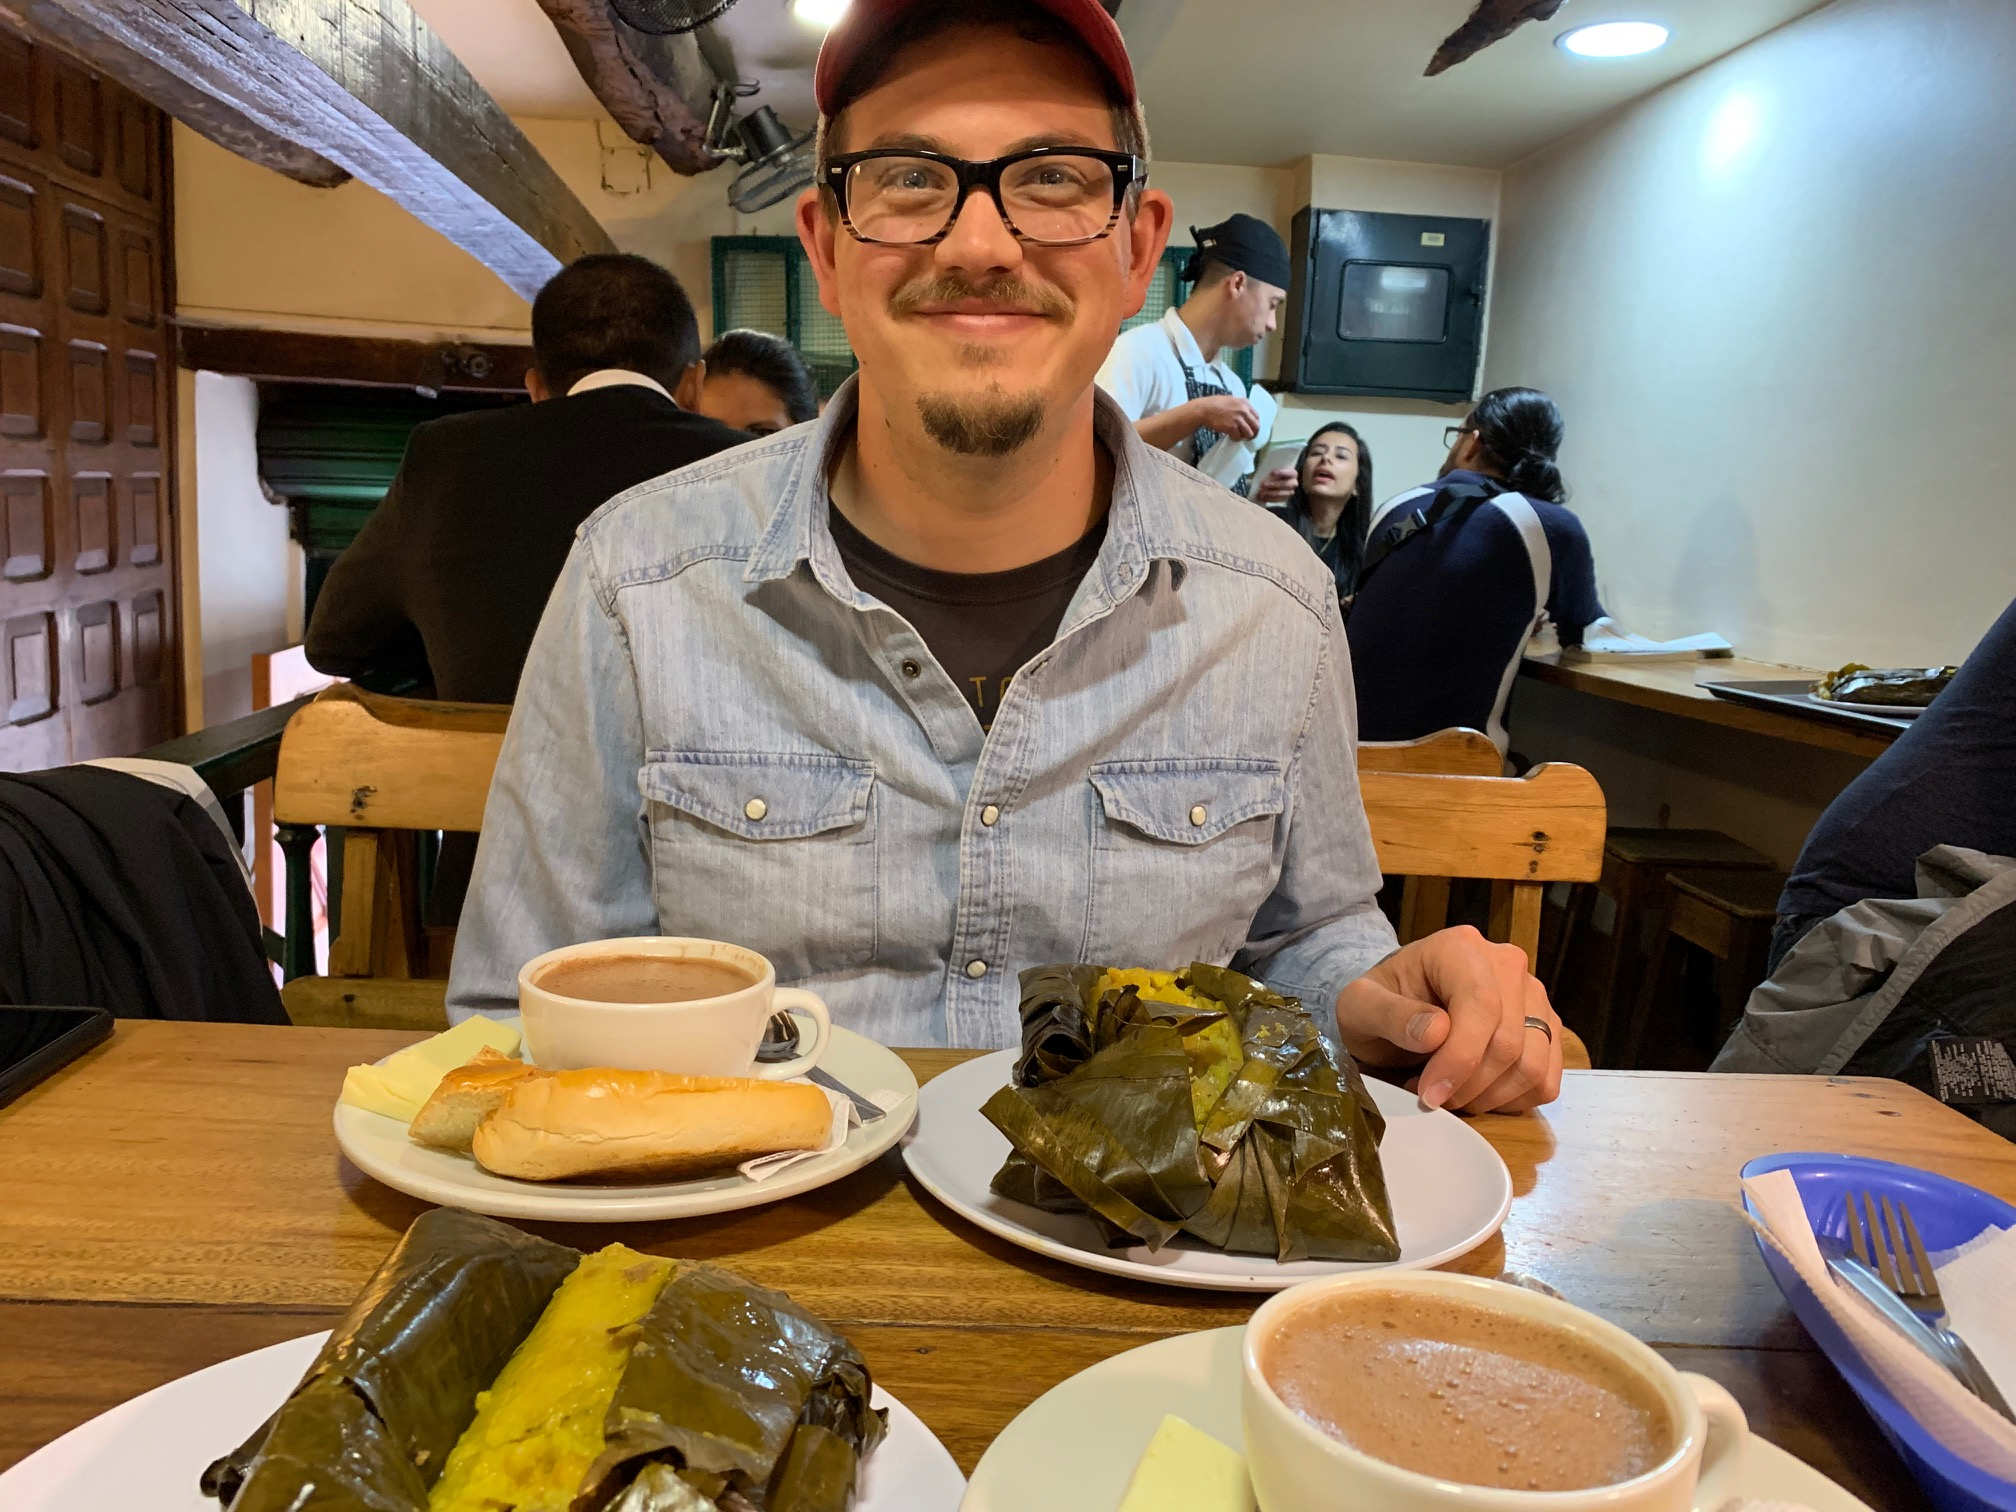 Justin very ready to dig into his giant tamal and wishing for me to stop taking photos already.